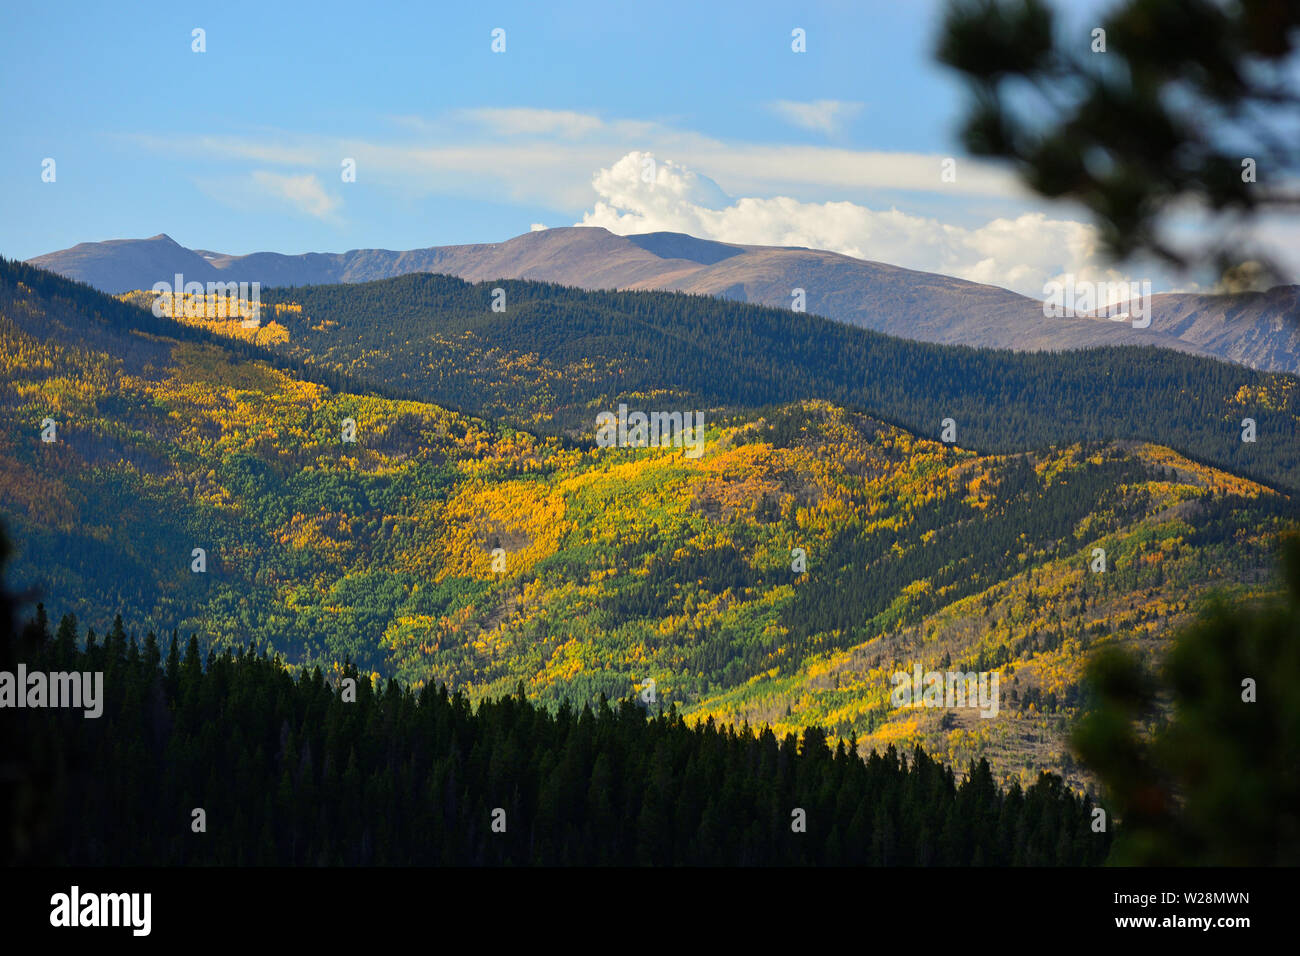 Colorful Fall Leaves from Aspen Trees in the Rocky Mountains - Stock Image